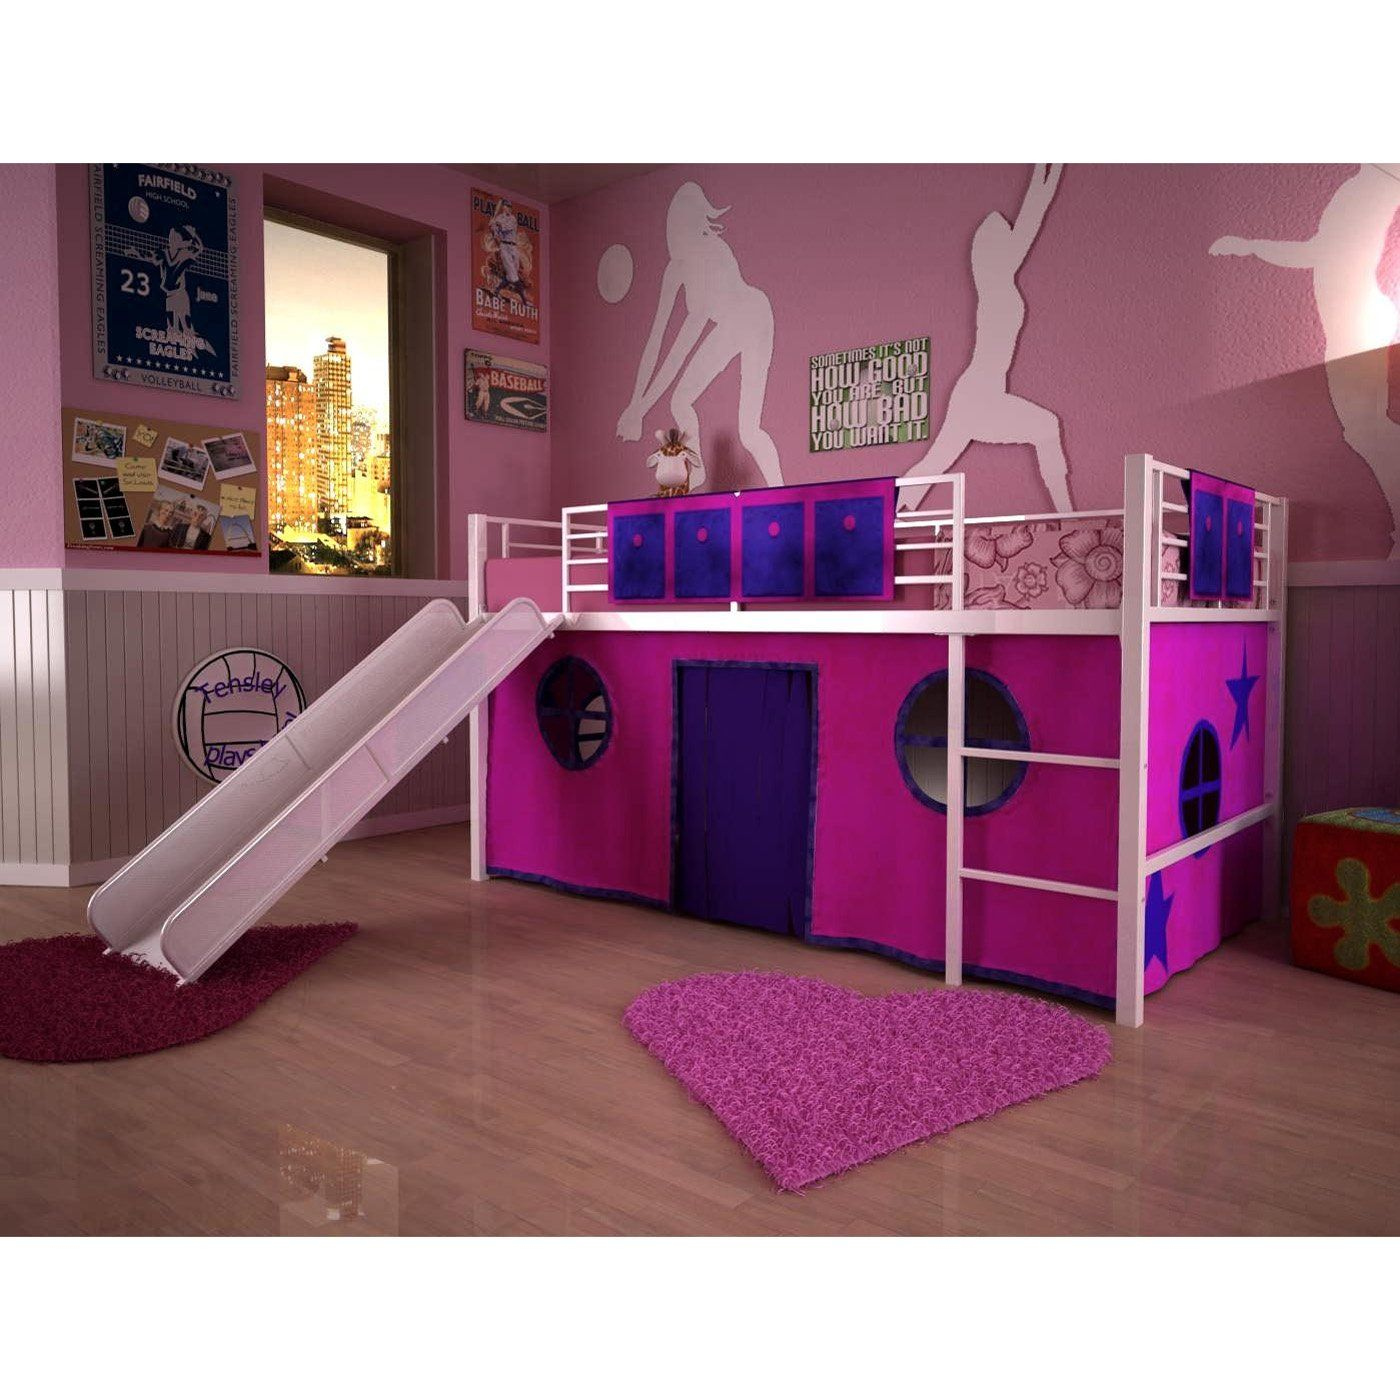 Beds For Teenagers pink-loft-beds-for-teenagers-loft-beds-for-teenage-girls-pb-teen